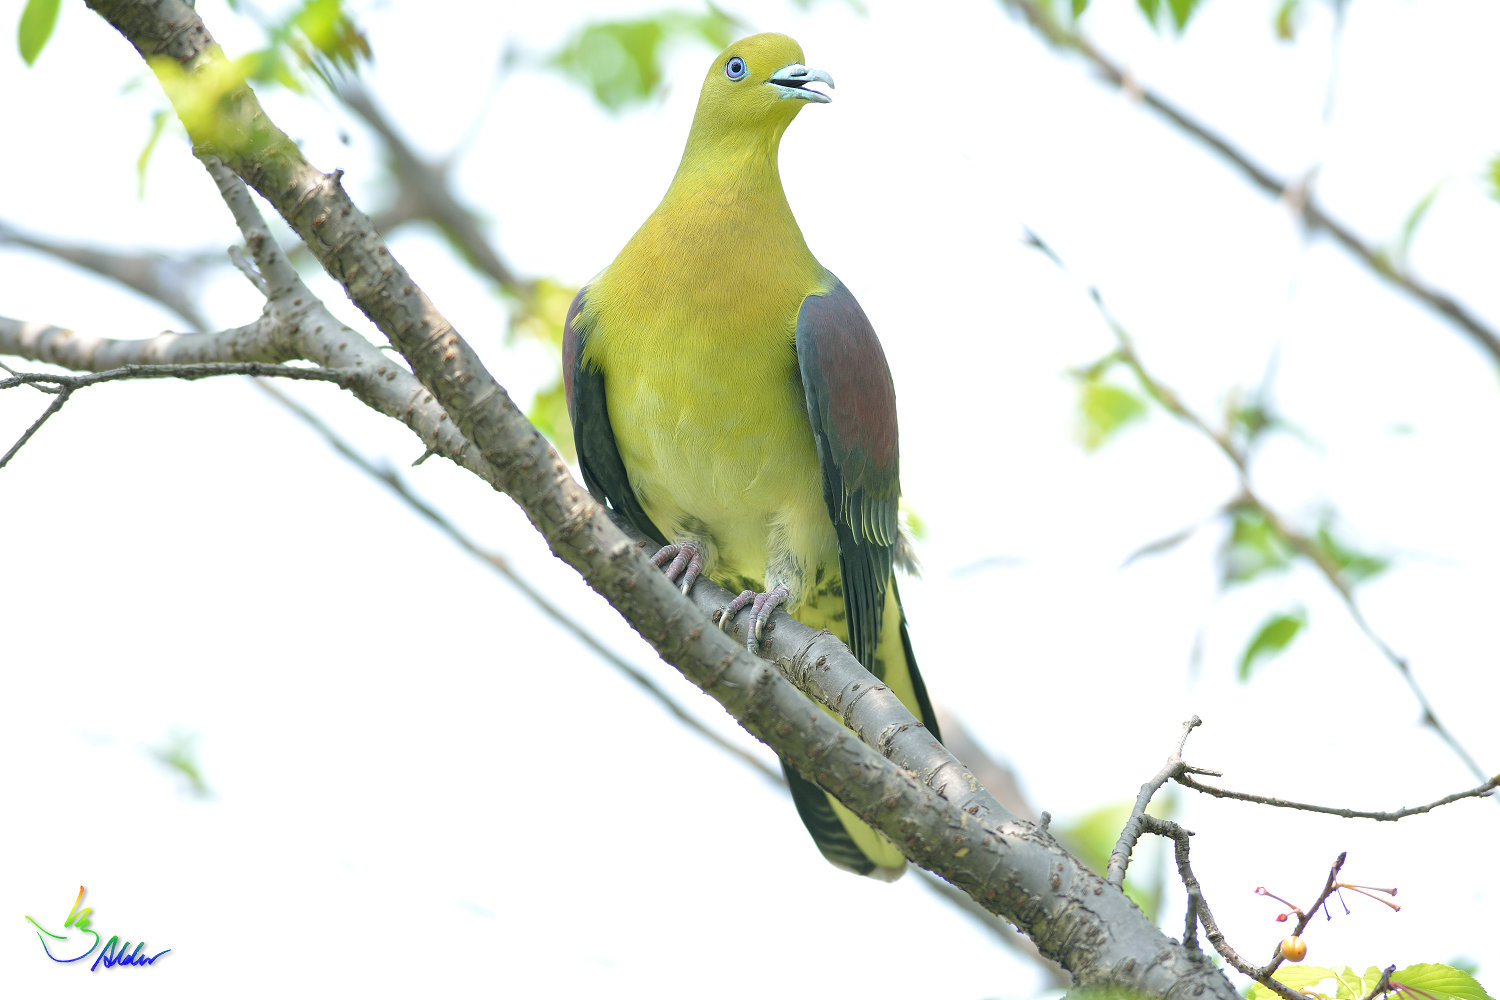 White-bellied_Green_Pigeon_5827